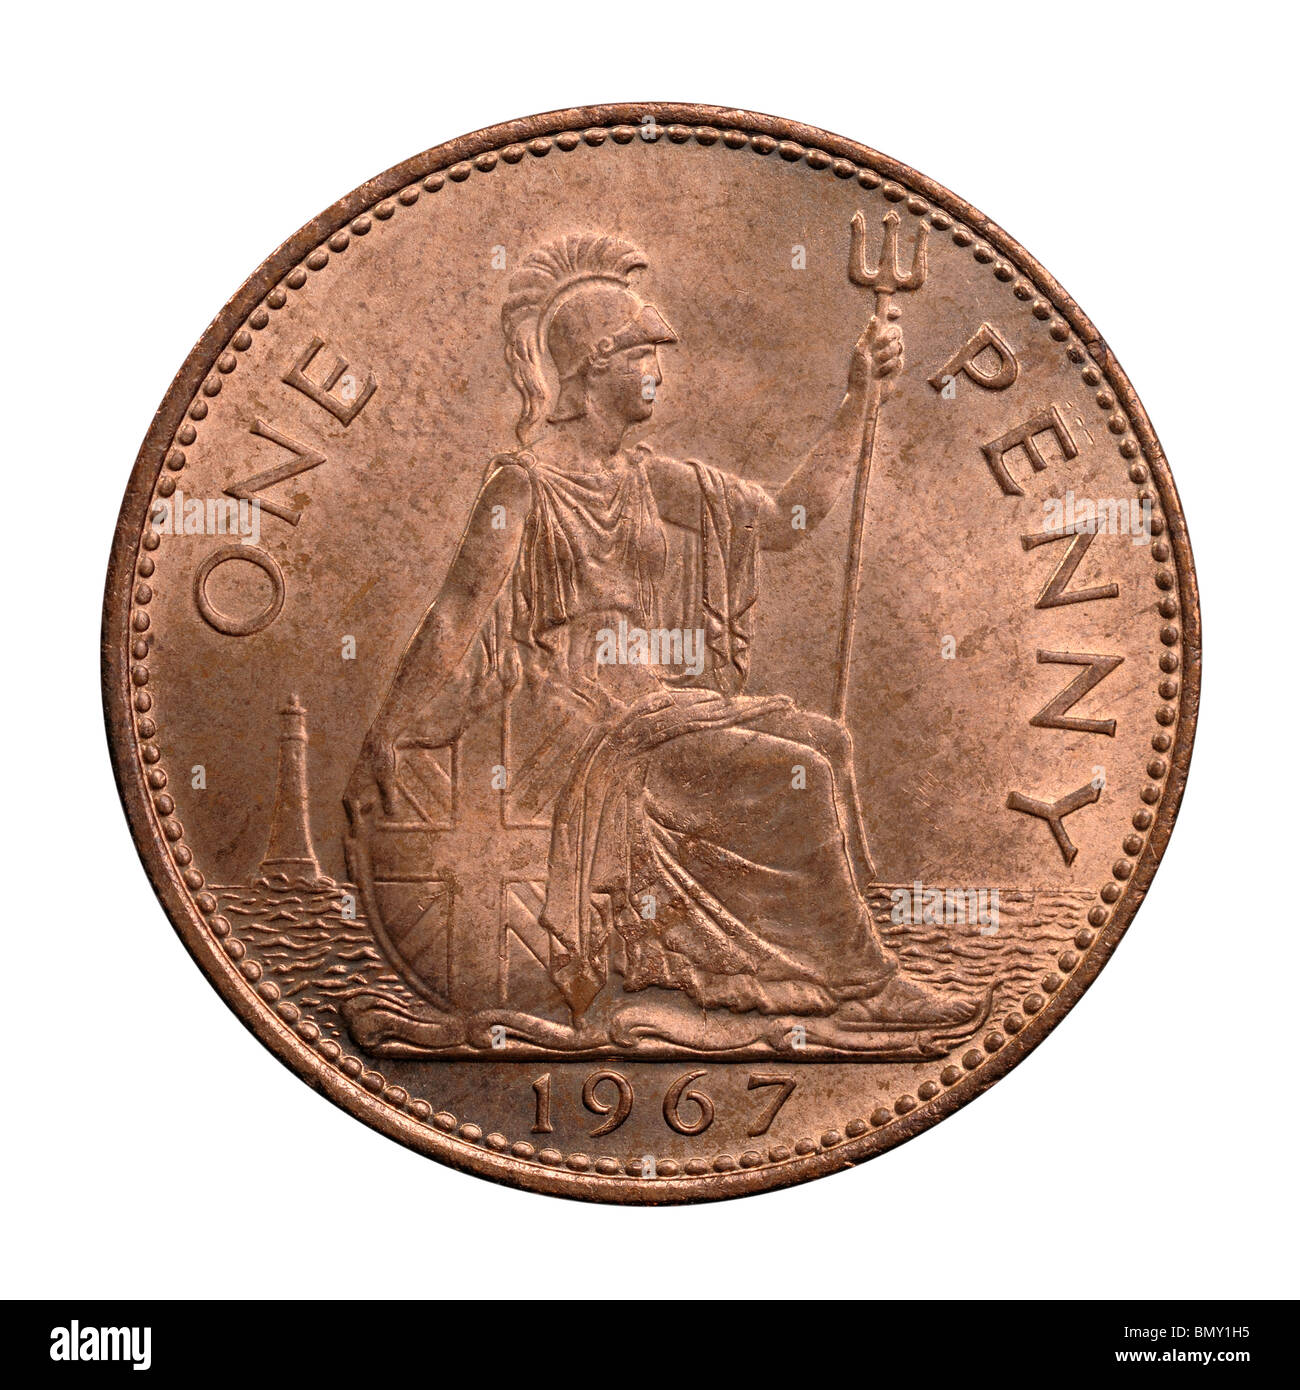 1967 UK One Penny coin - Stock Image